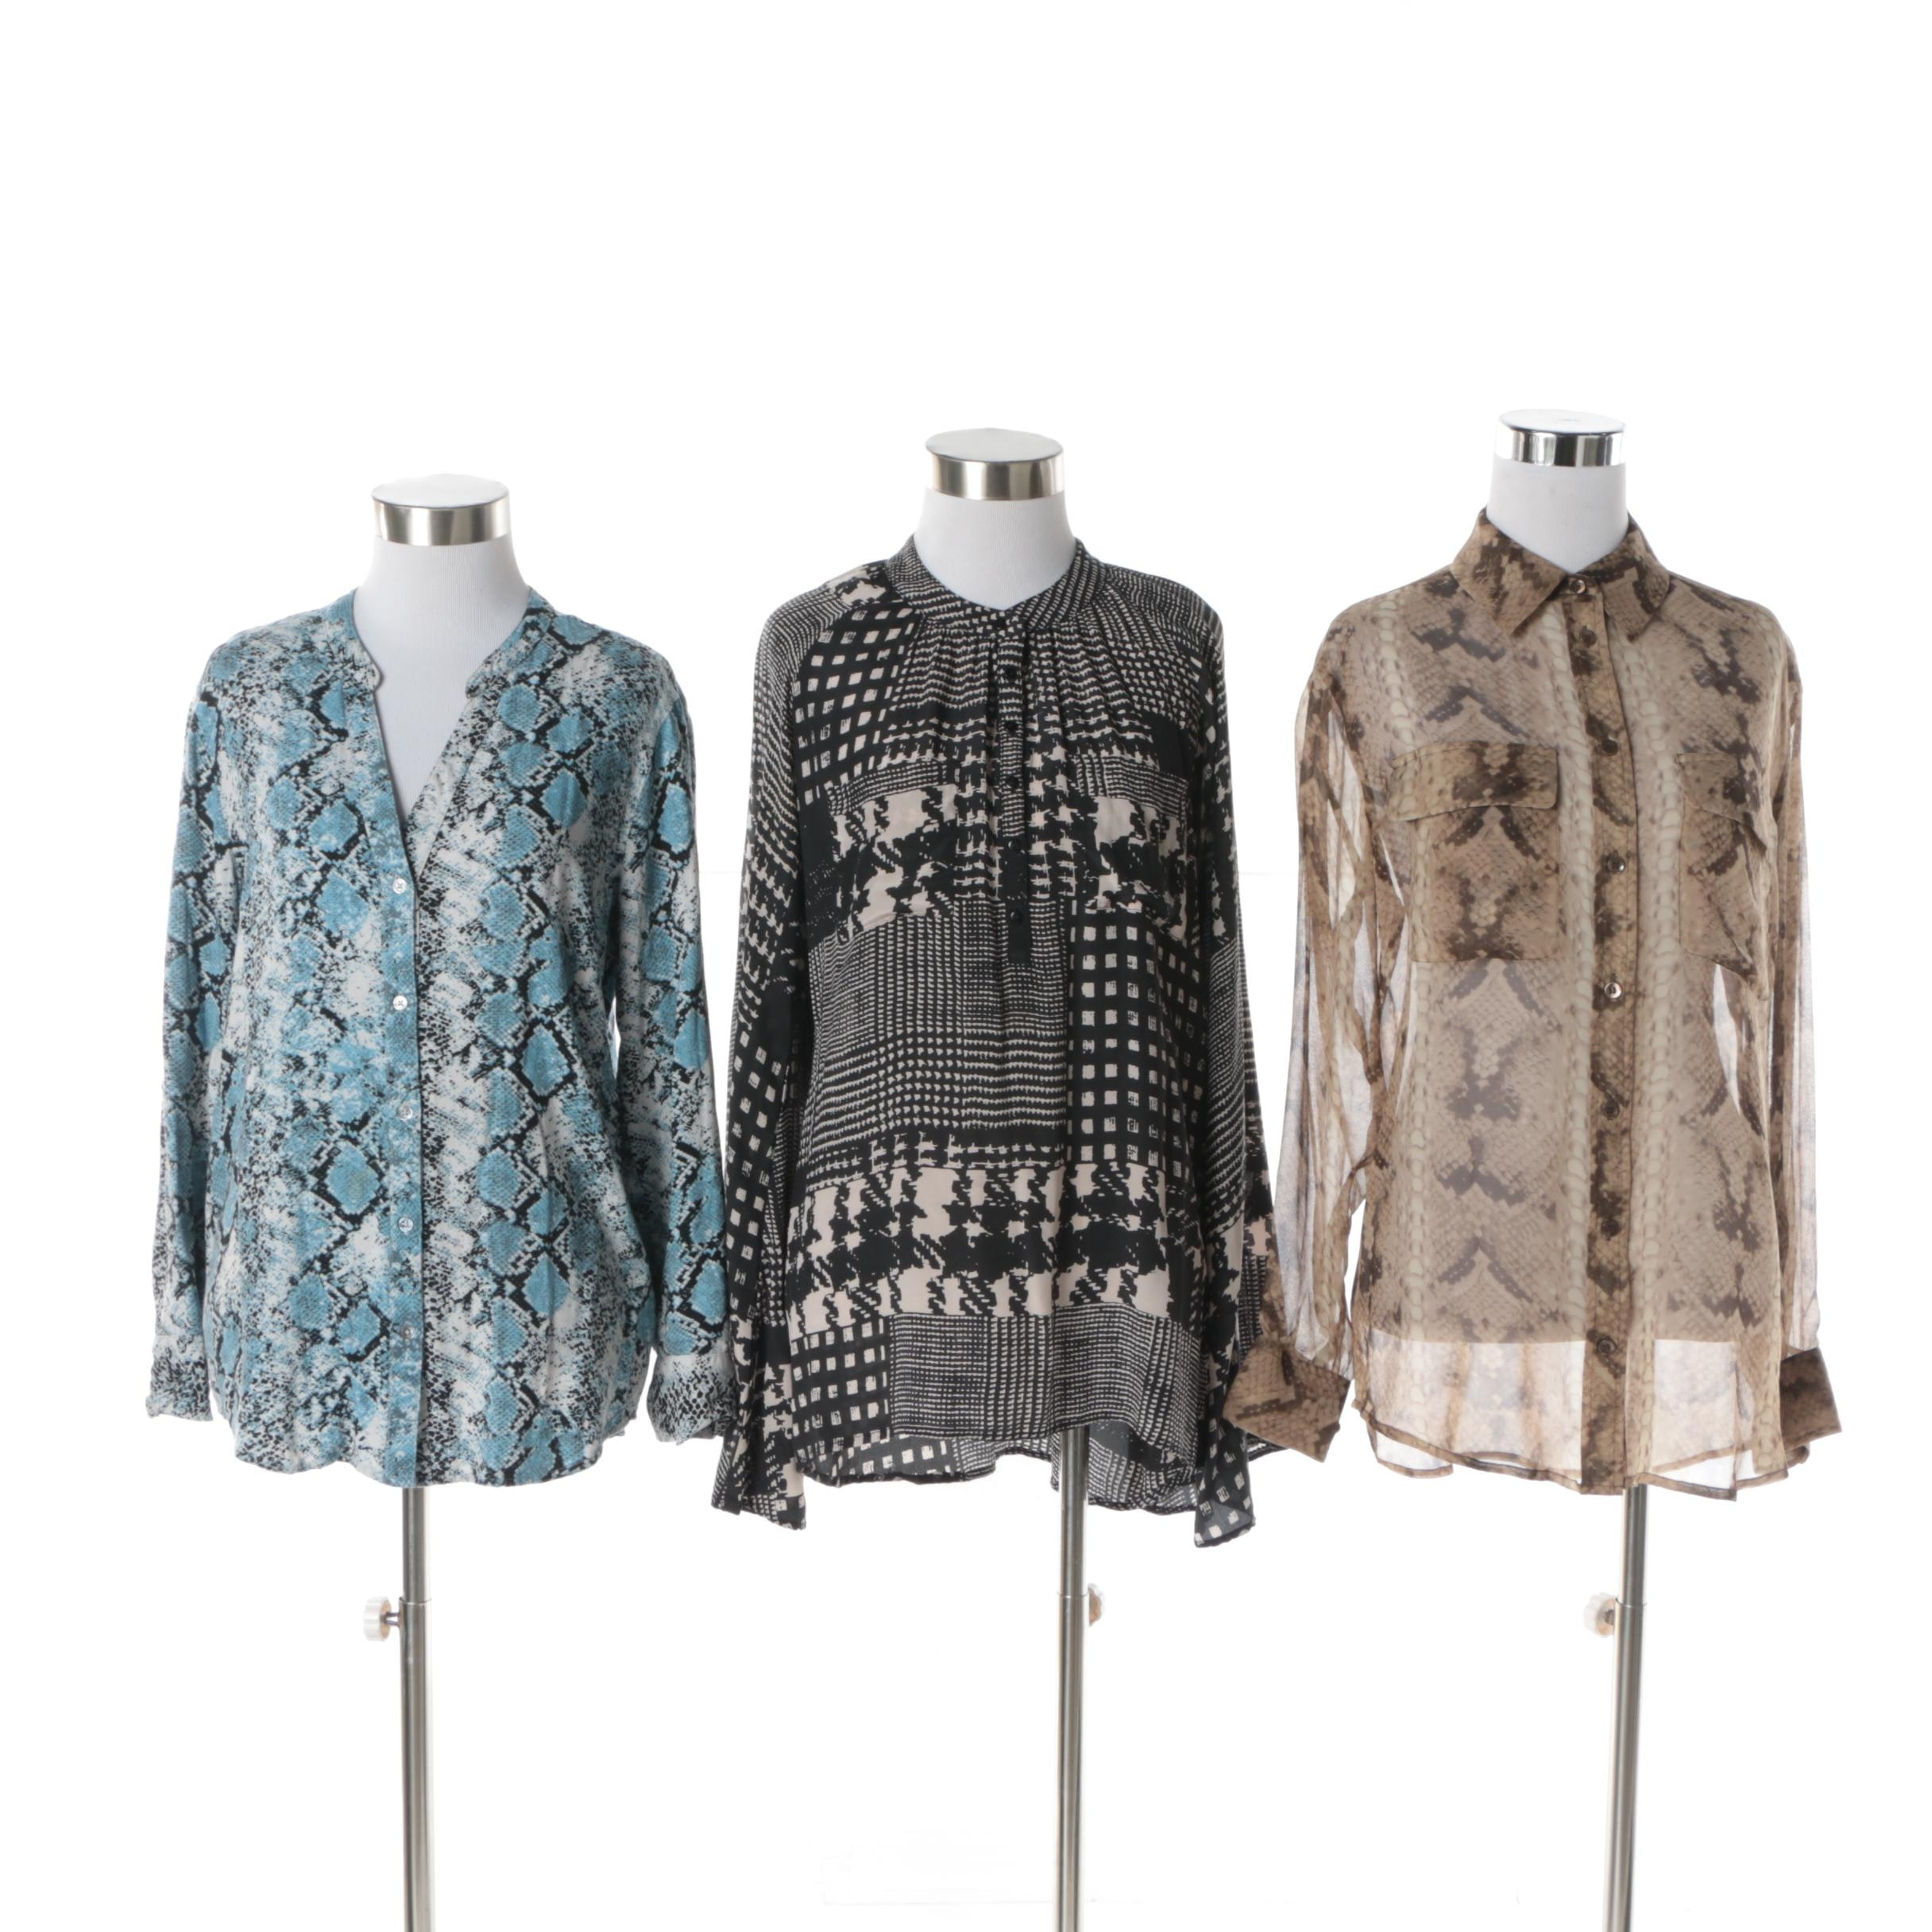 Women's Printed Blouses Including Winter Kate and Soft Joie